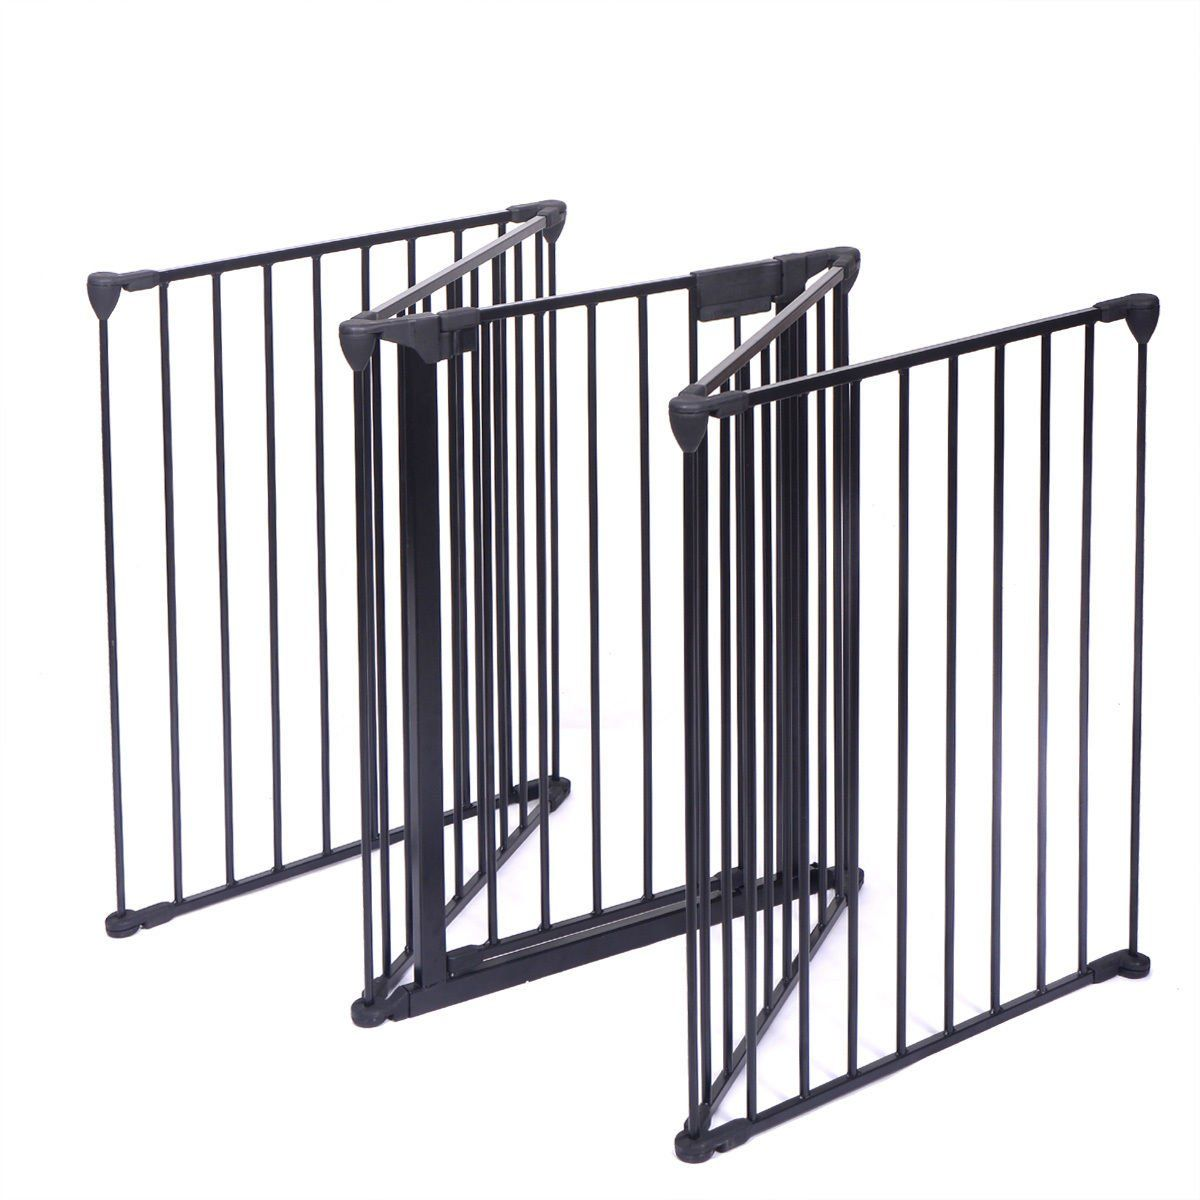 Gate Fence Fireplace Constructed Of Heavy Duty Tubular Steel For